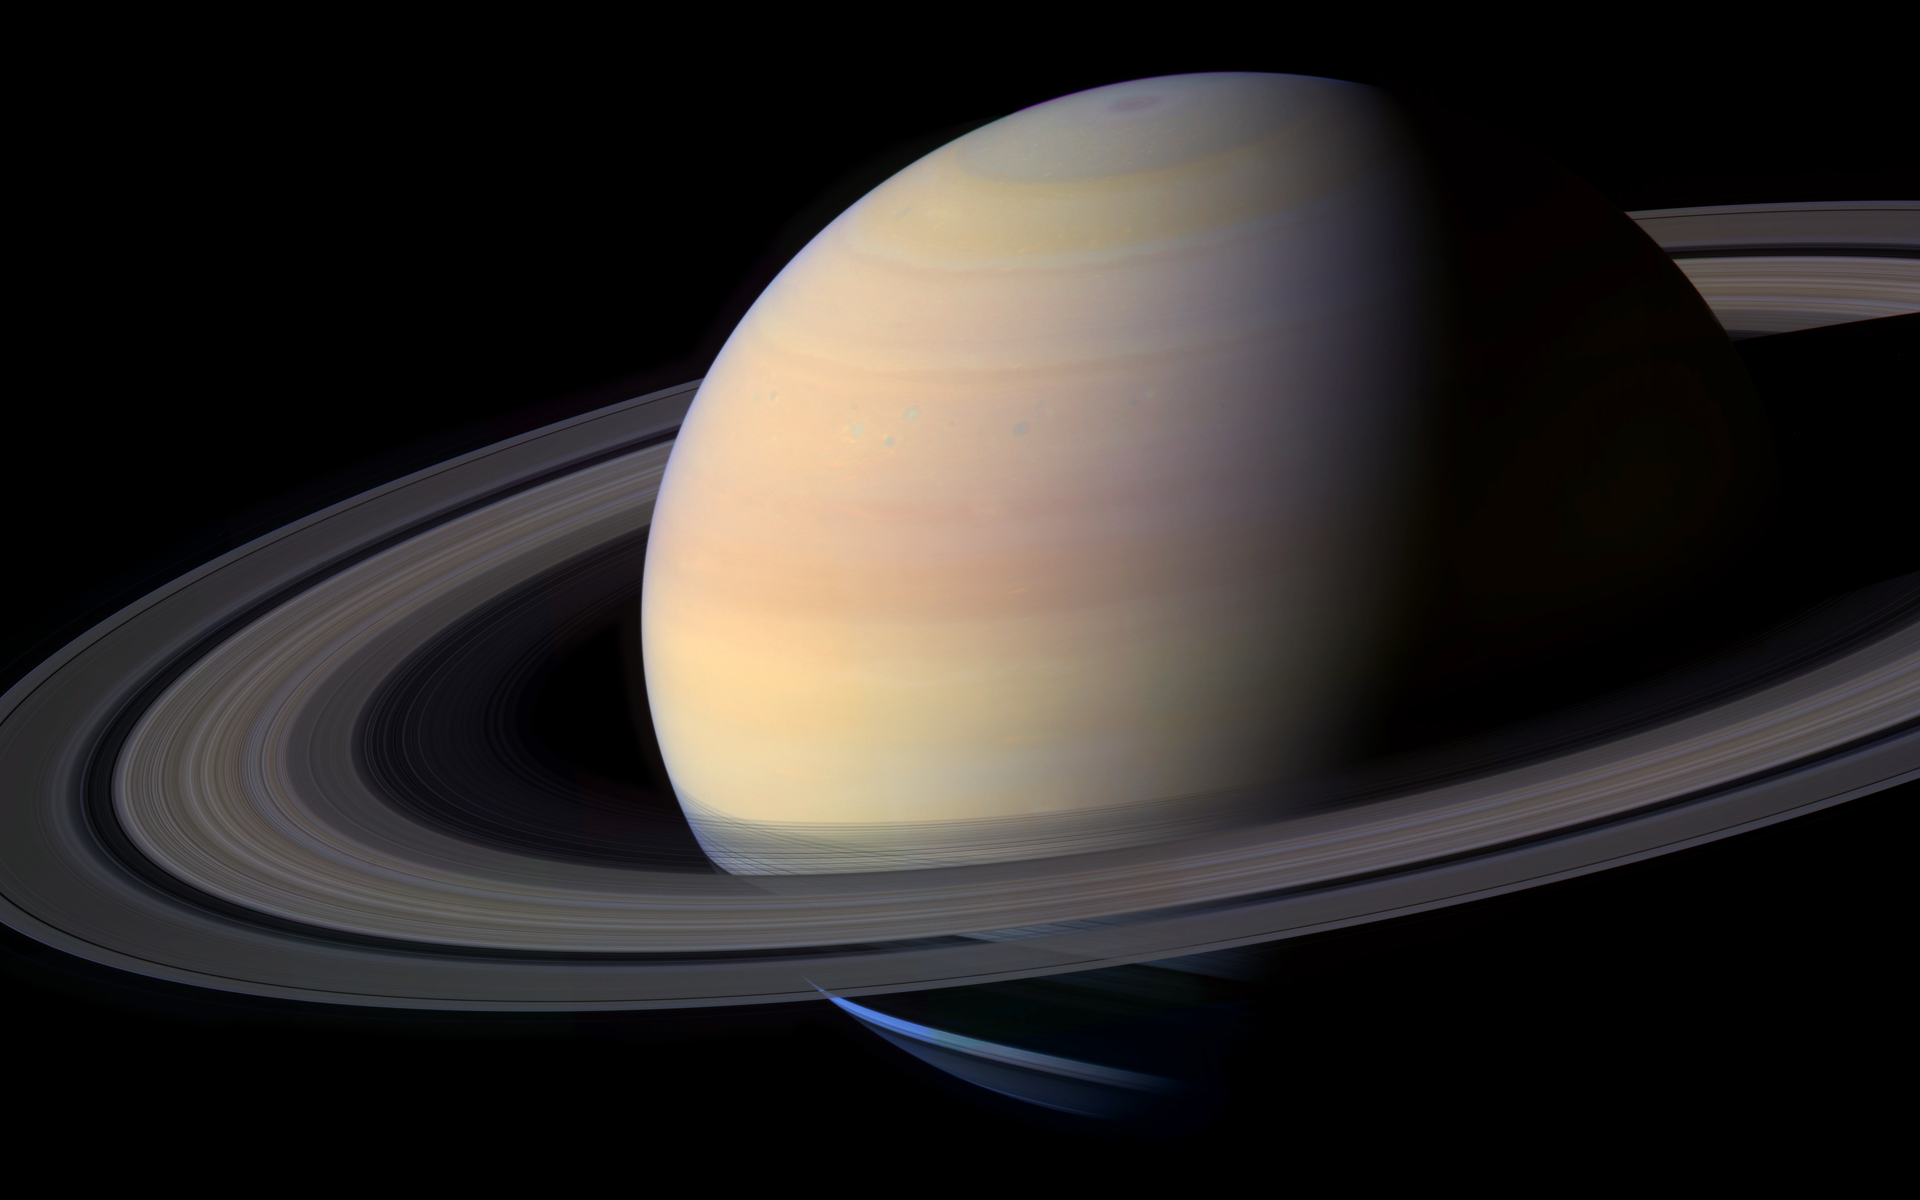 digital images of saturn the planet - photo #15